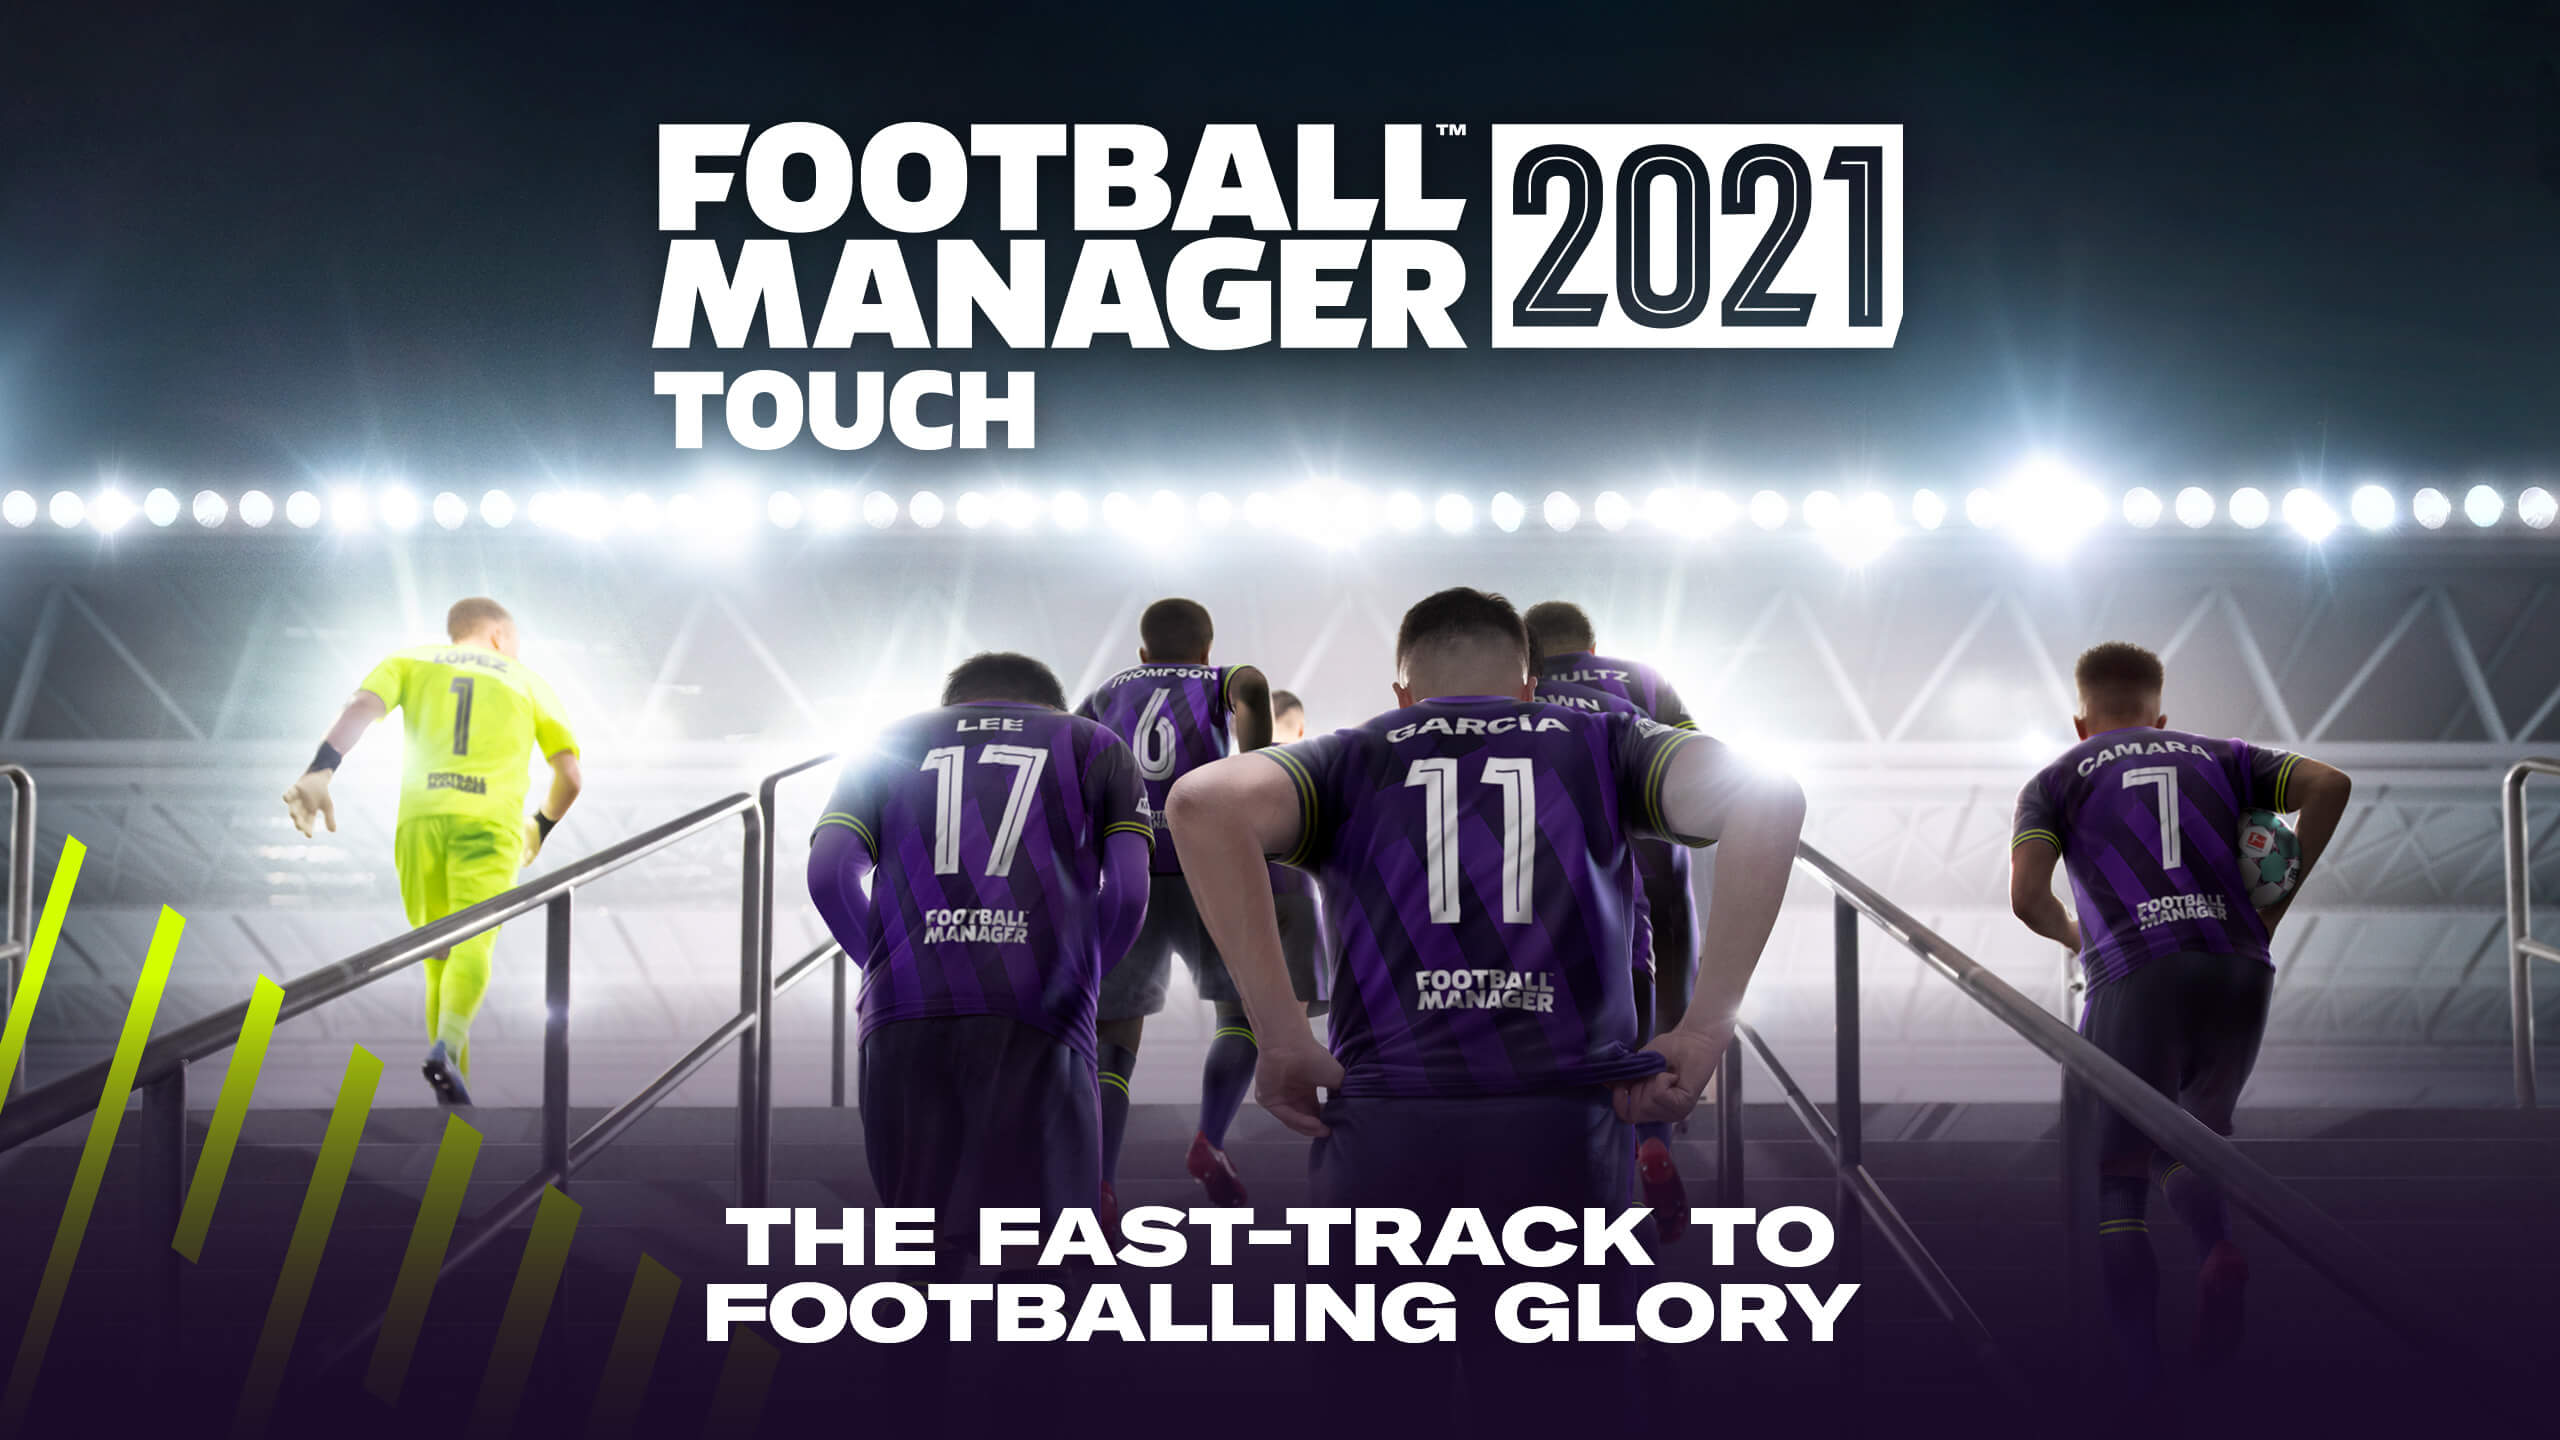 Football Manager 2021 Release Date, Gameplay and New Updates